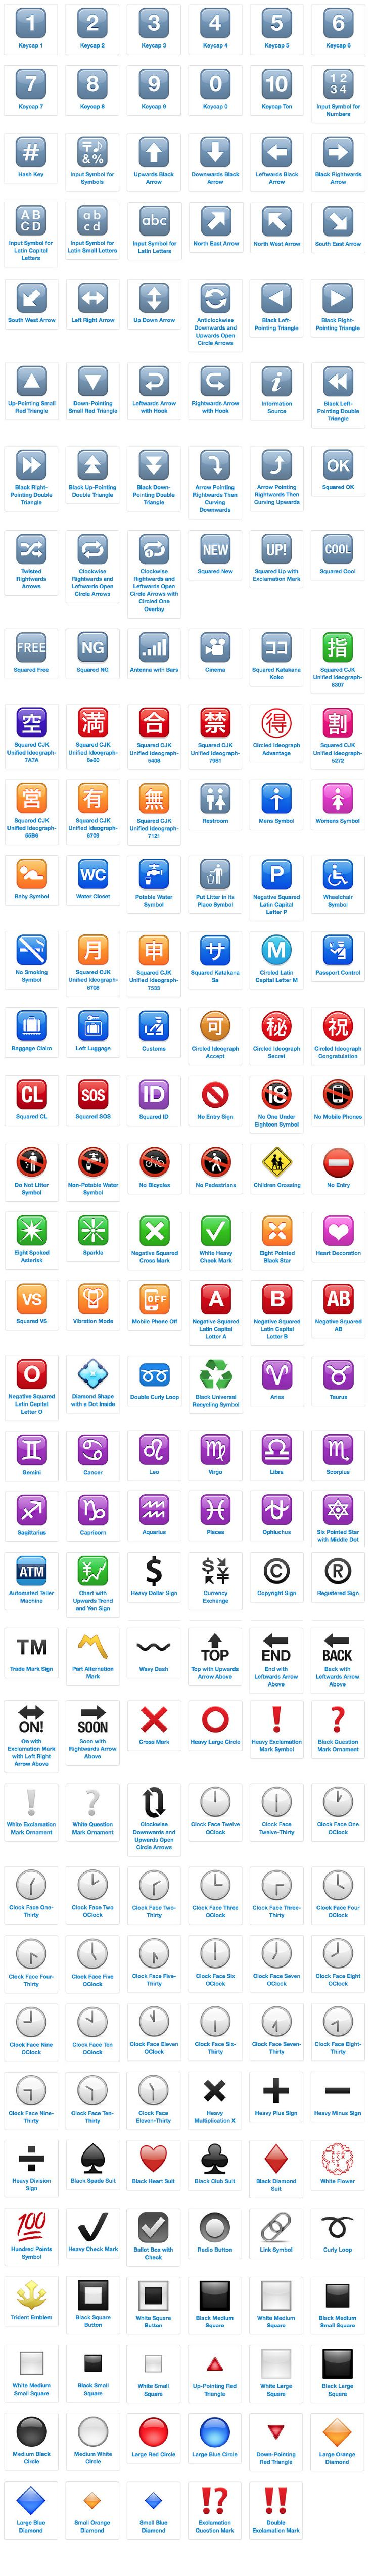 Best 25 emoji symbols meaning ideas on pinterest emojis and emoji icon list symbols with meanings and definitions buycottarizona